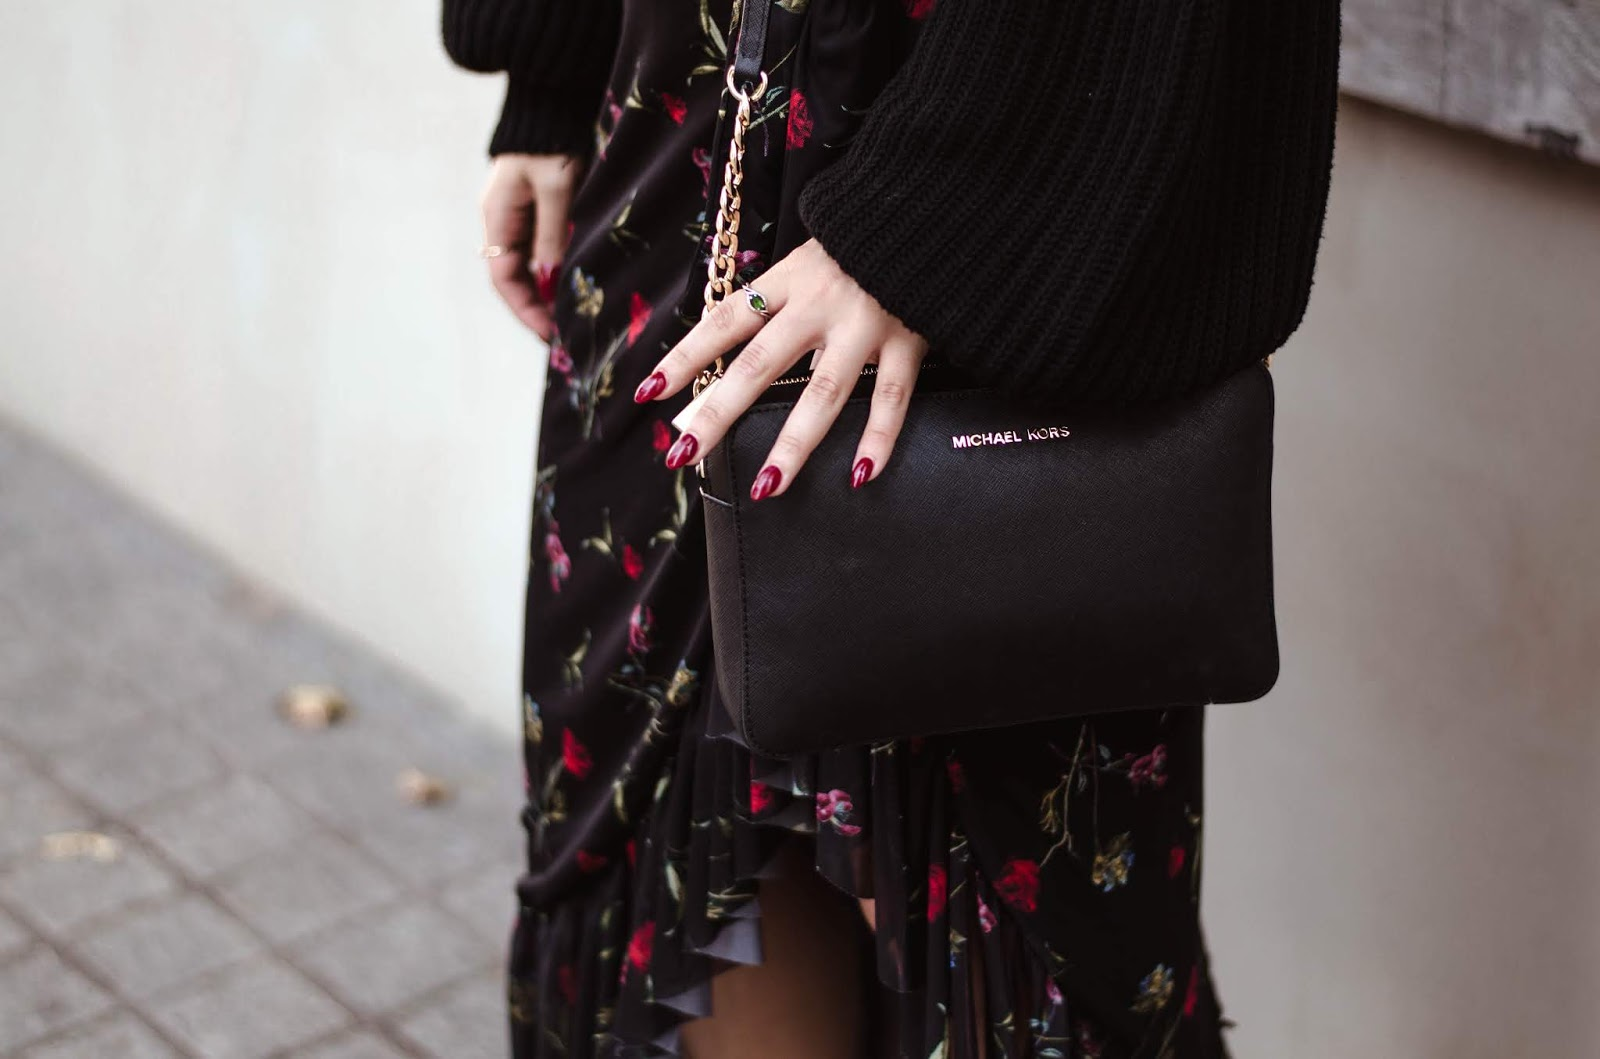 na-kd, wrap skirt, floral skirt, wide sleeves sweater, high heels, blog, blogger, outfit, michael kors